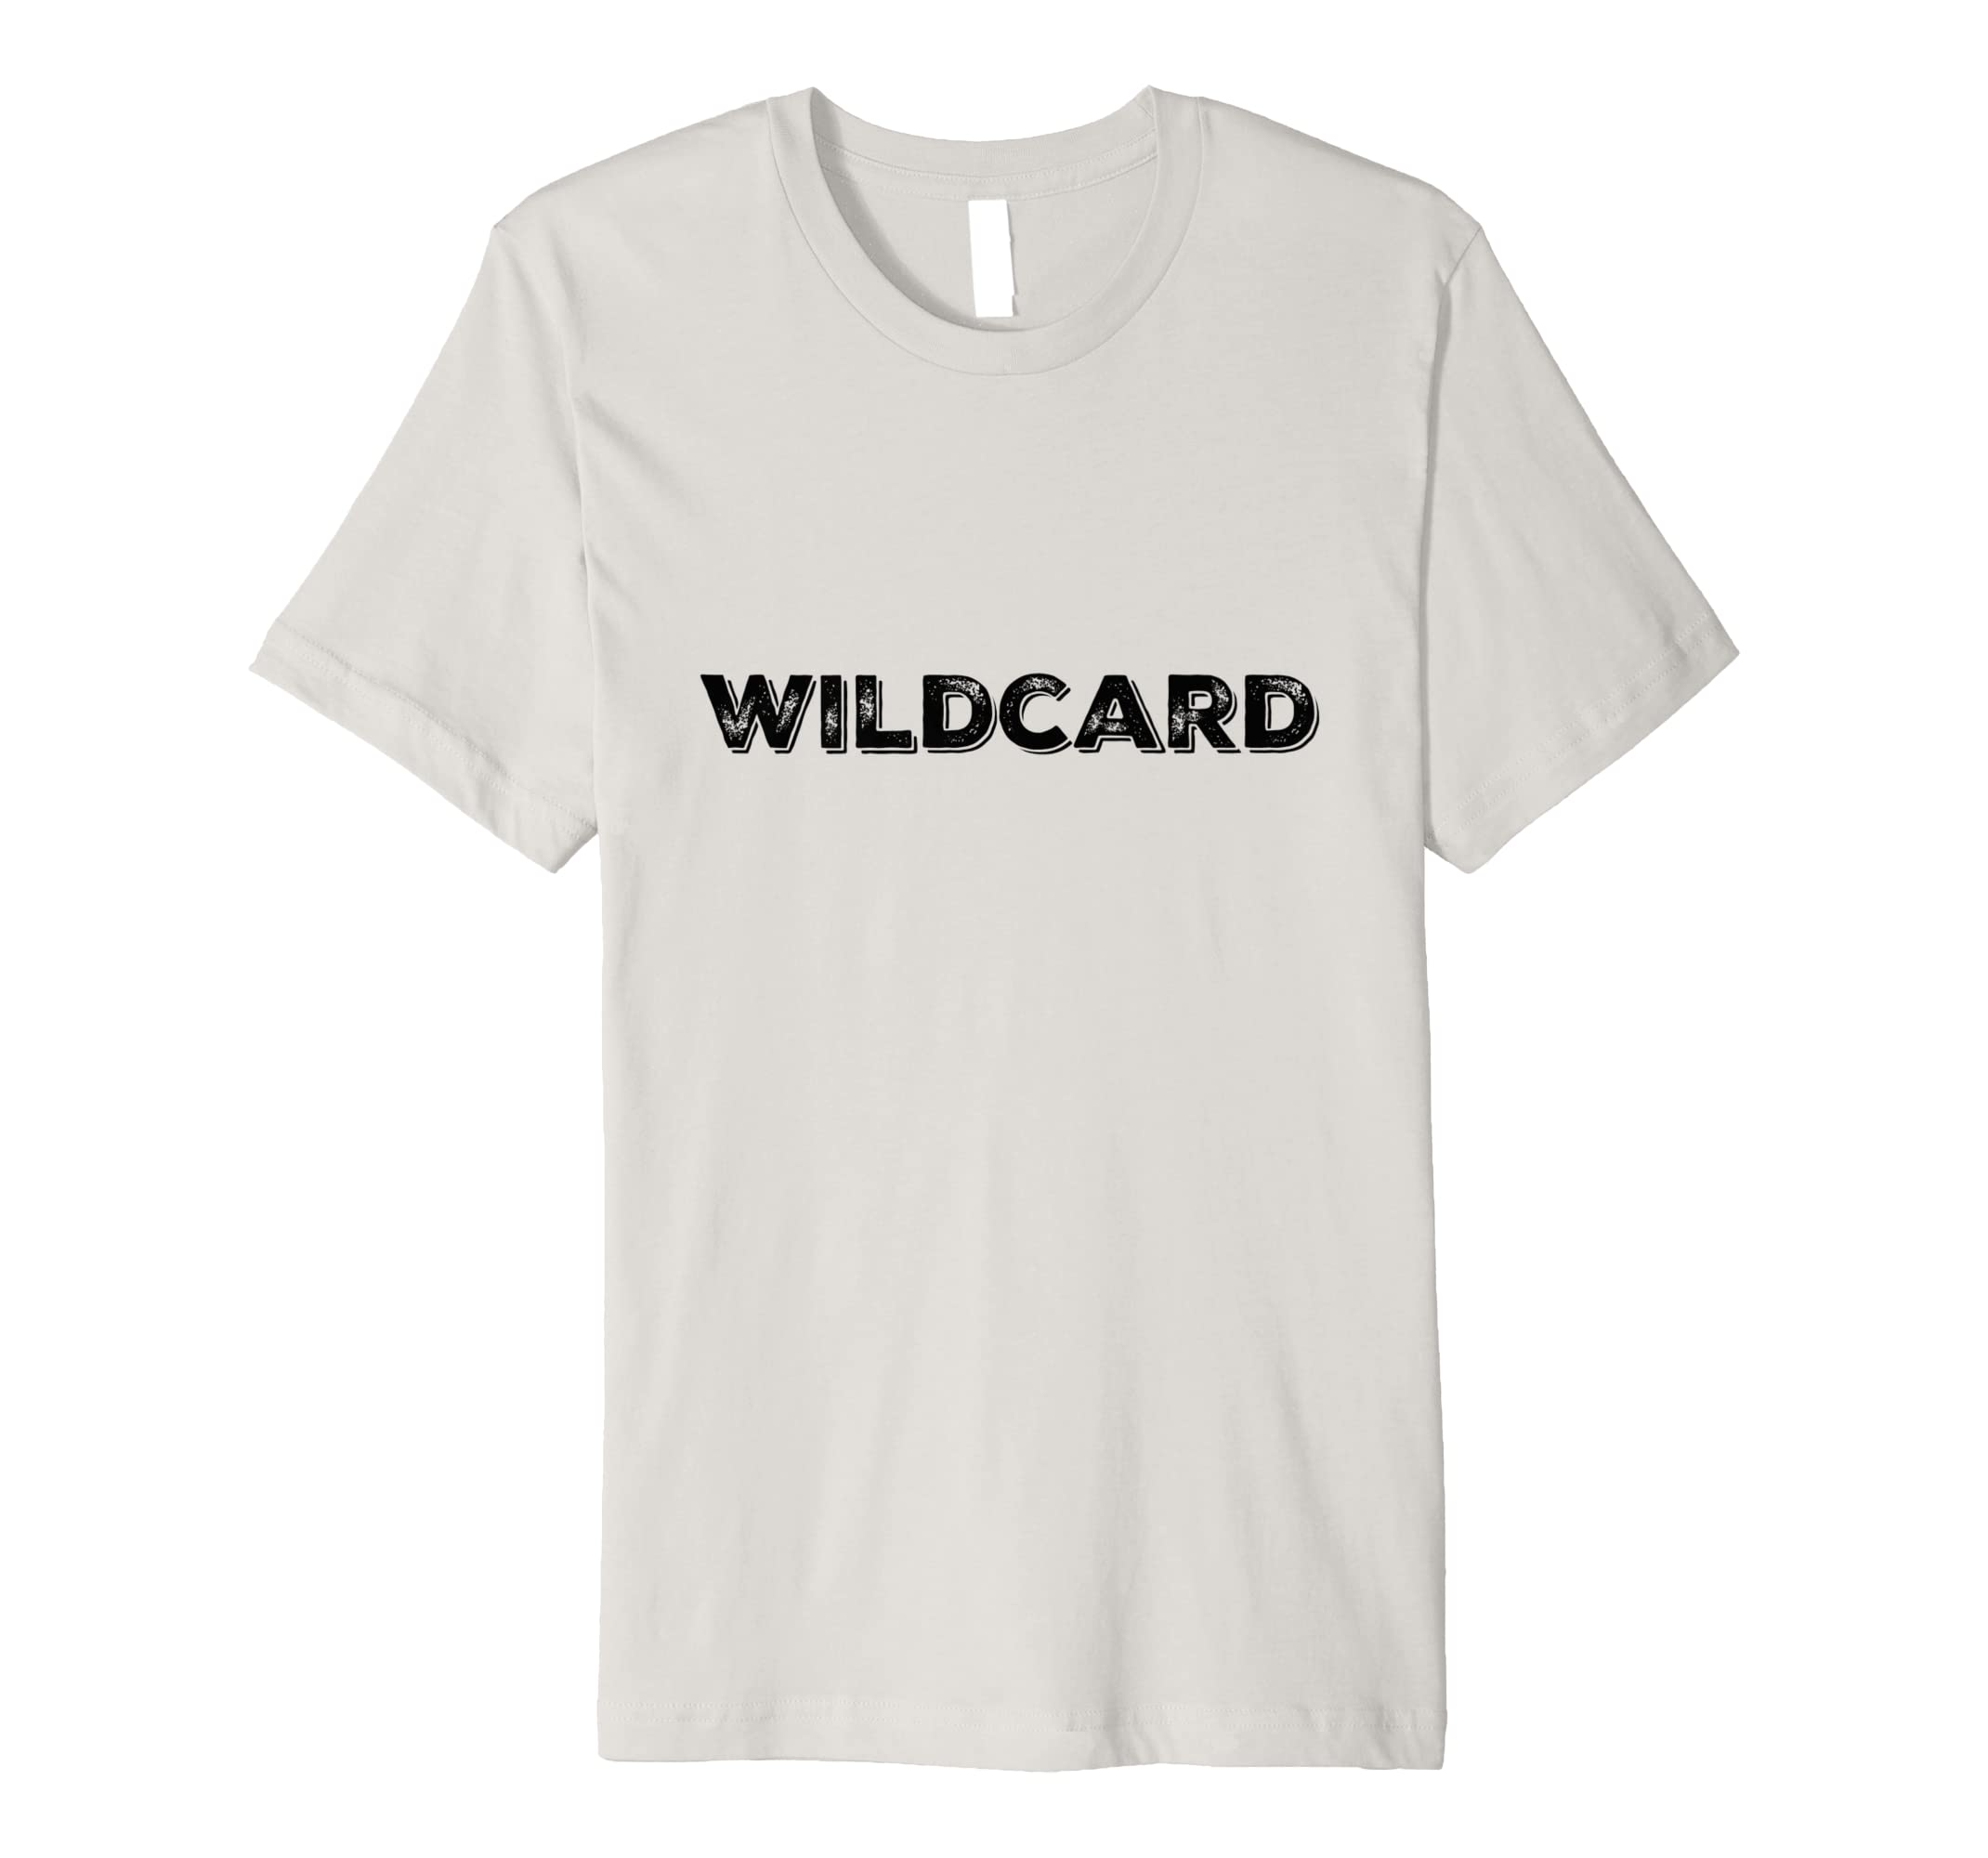 Amazon Wildcard Iasip Funny Tv Show Quote Design T Shirt Clothing